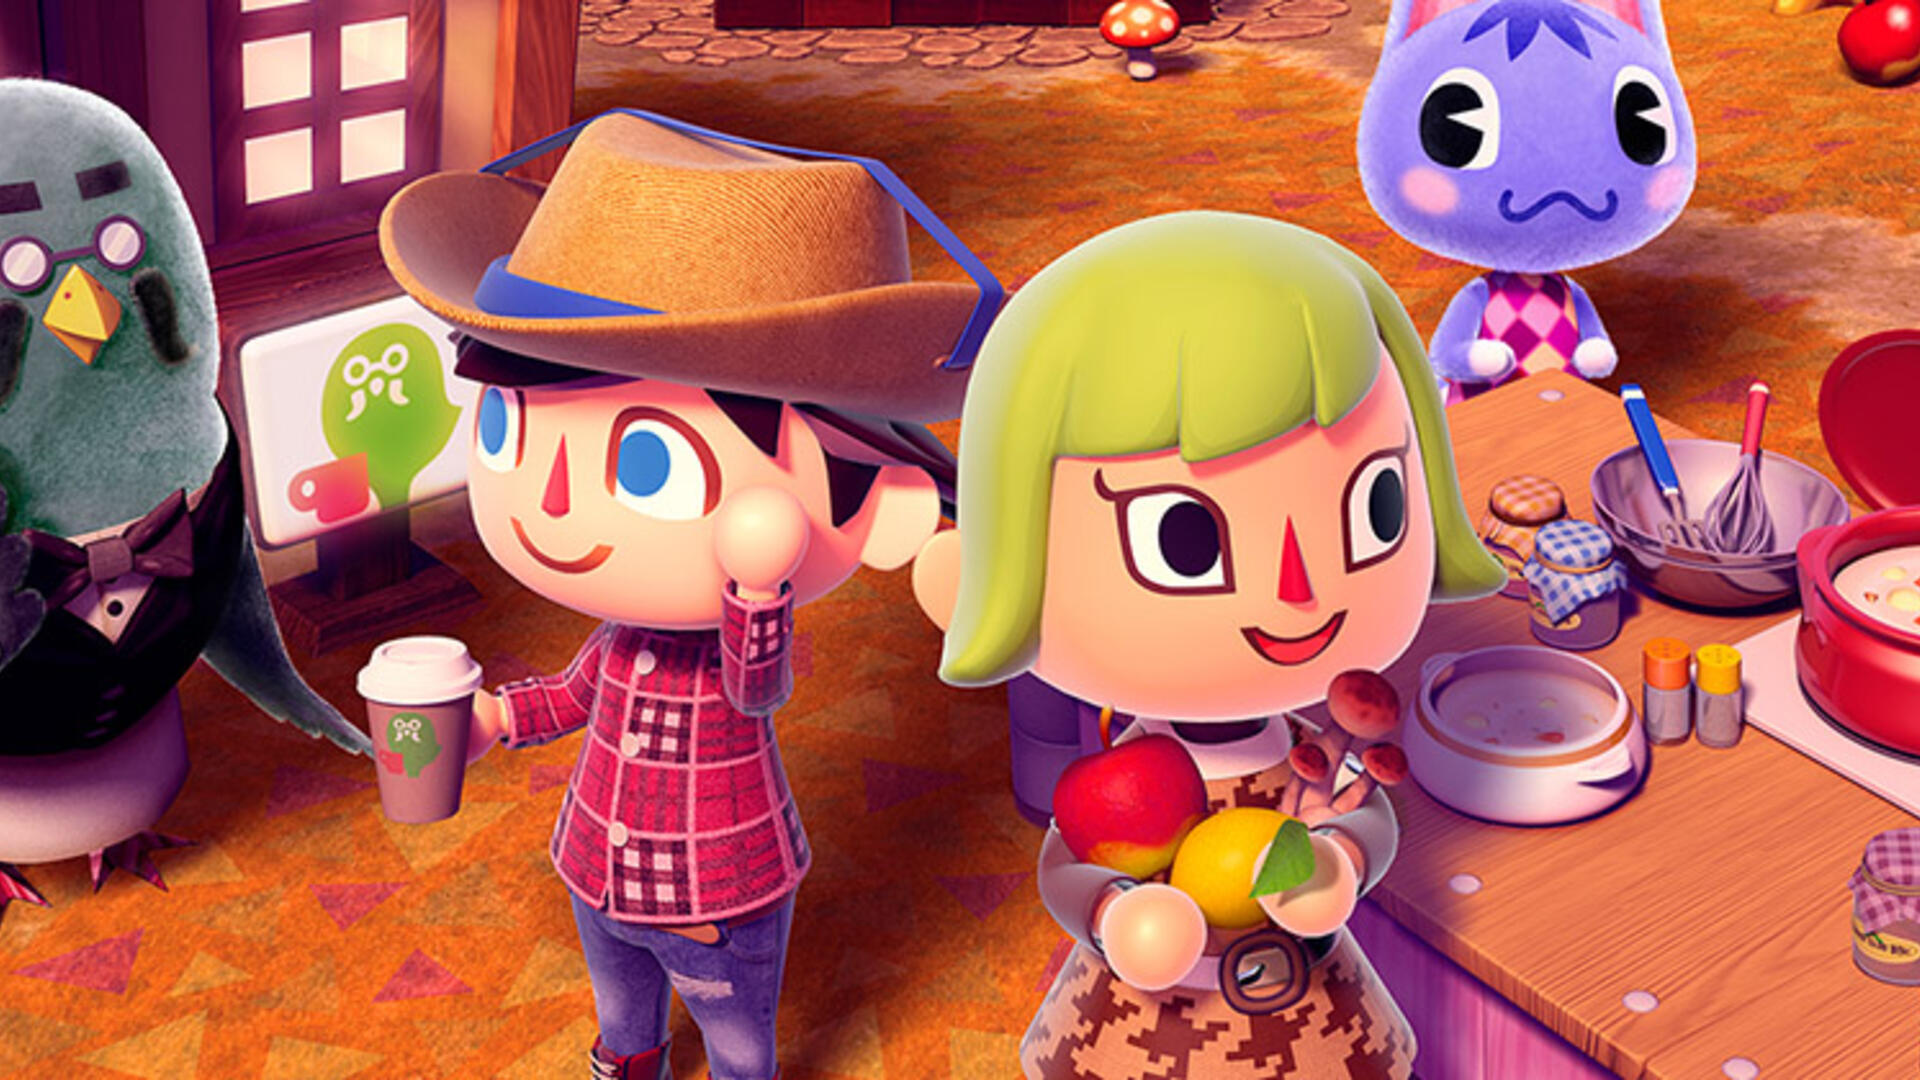 Why Does Everyone Keep Playing Animal Crossing?